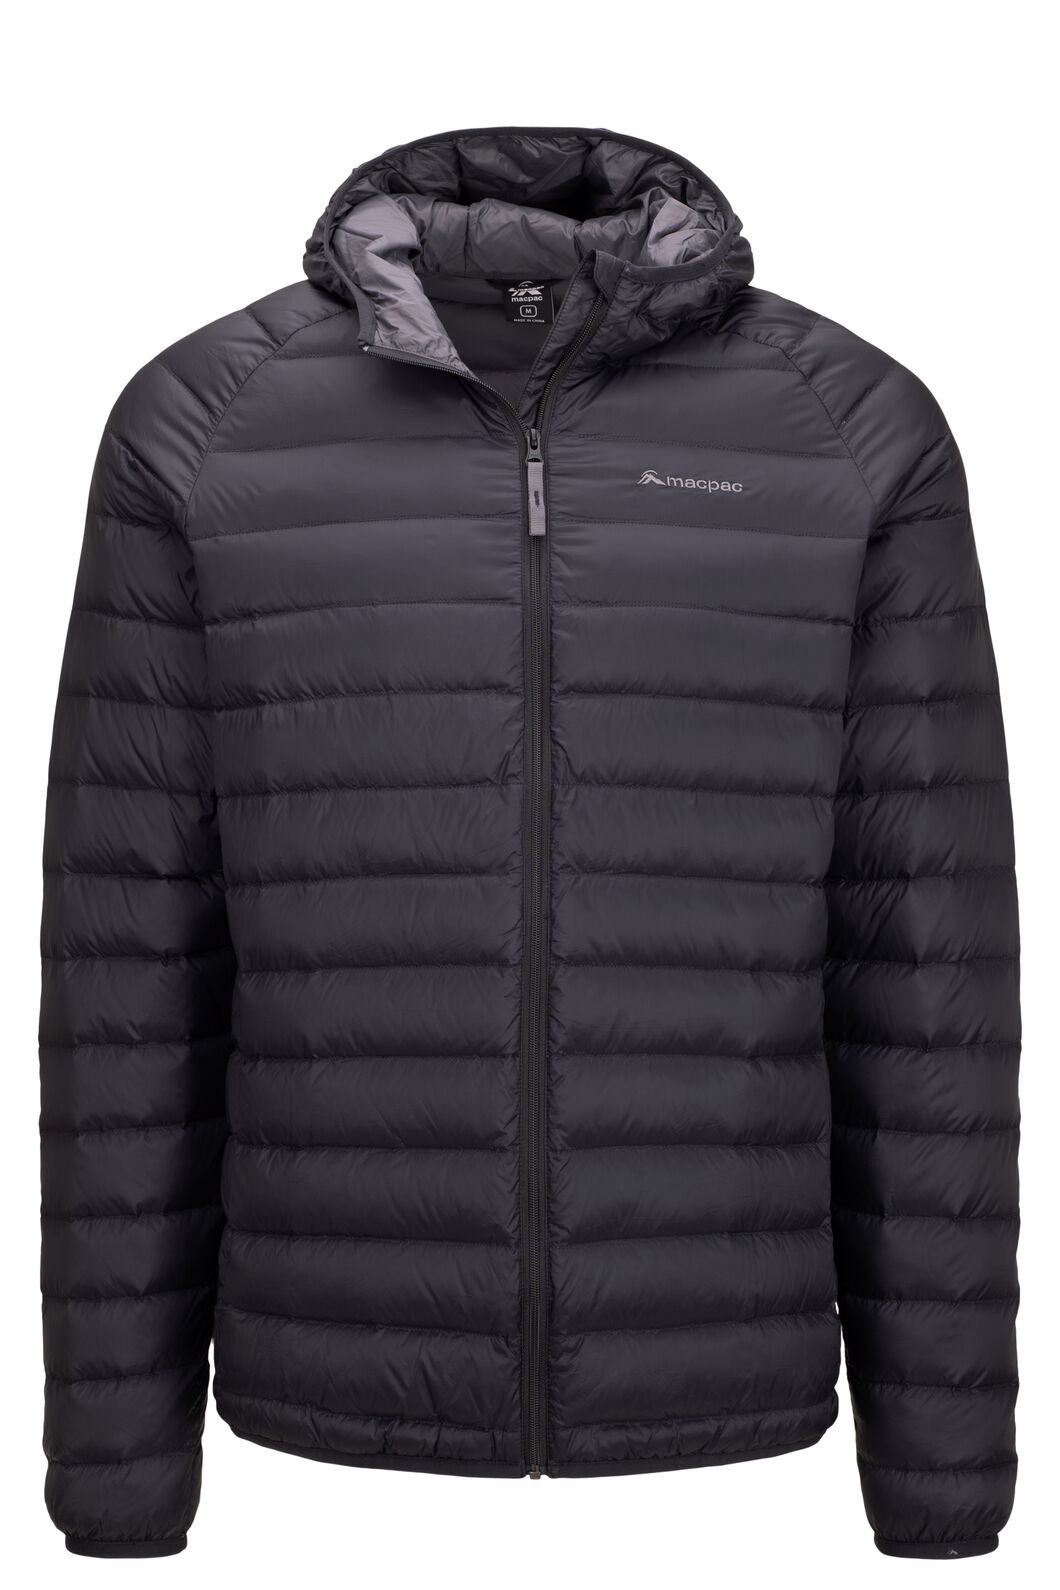 Macpac Uber Hooded Down Jacket — Men's, Black, hi-res